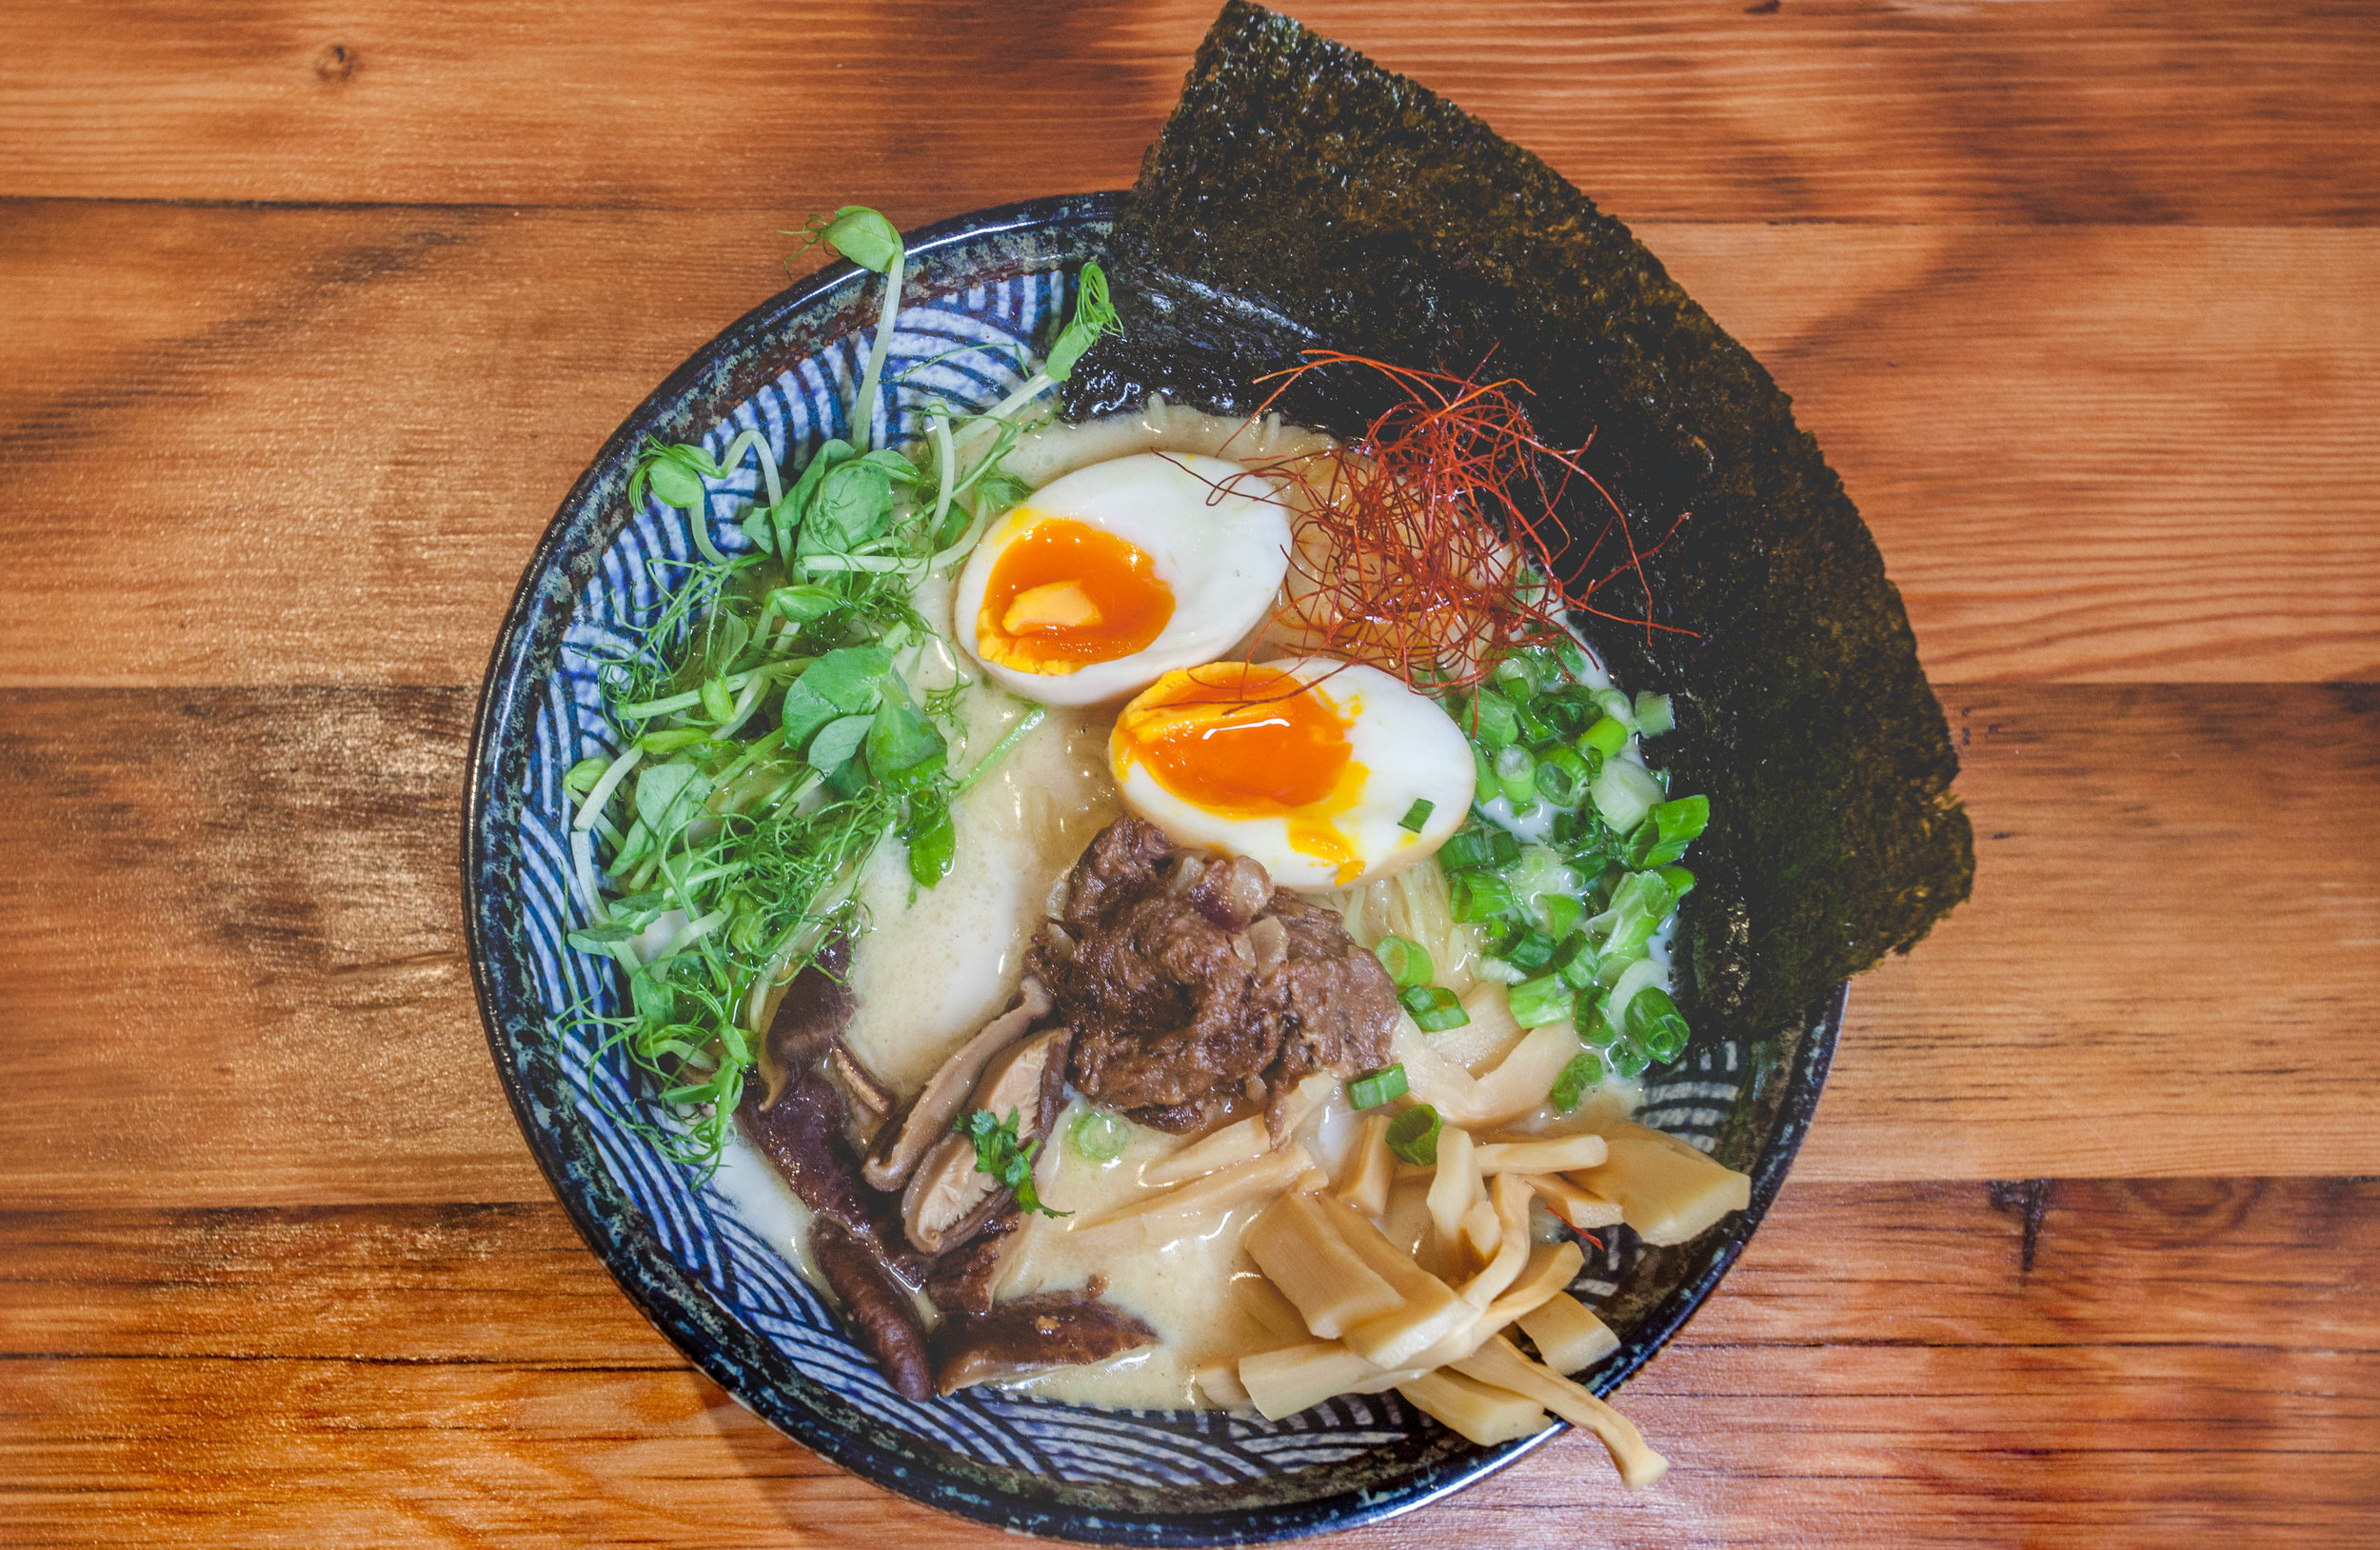 Ramo Ramen will be competing in this Saturday's Battle of the Broths, presented by Timeout London and Deliveroo, with our signature bowl: the oxtail kare kare!